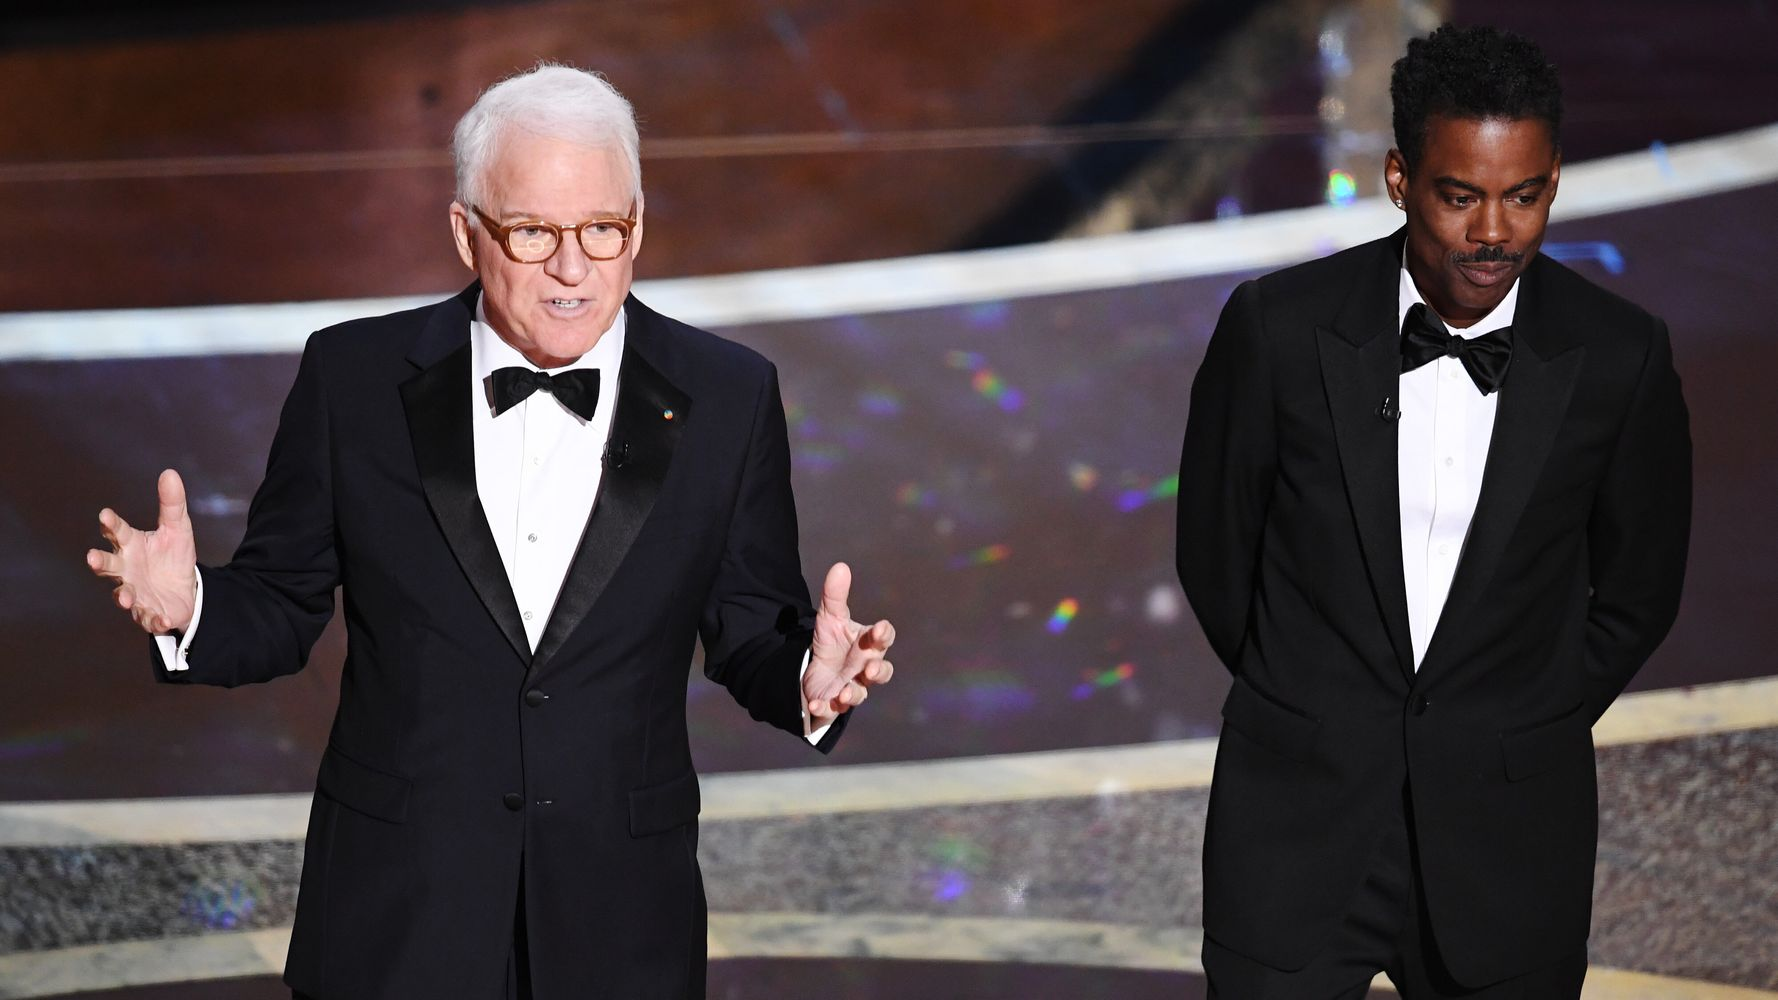 Westlake Legal Group 5e4166d9250000550033d517 Steve Martin Helped Open The Oscars With A Dig At The Iowa Caucuses